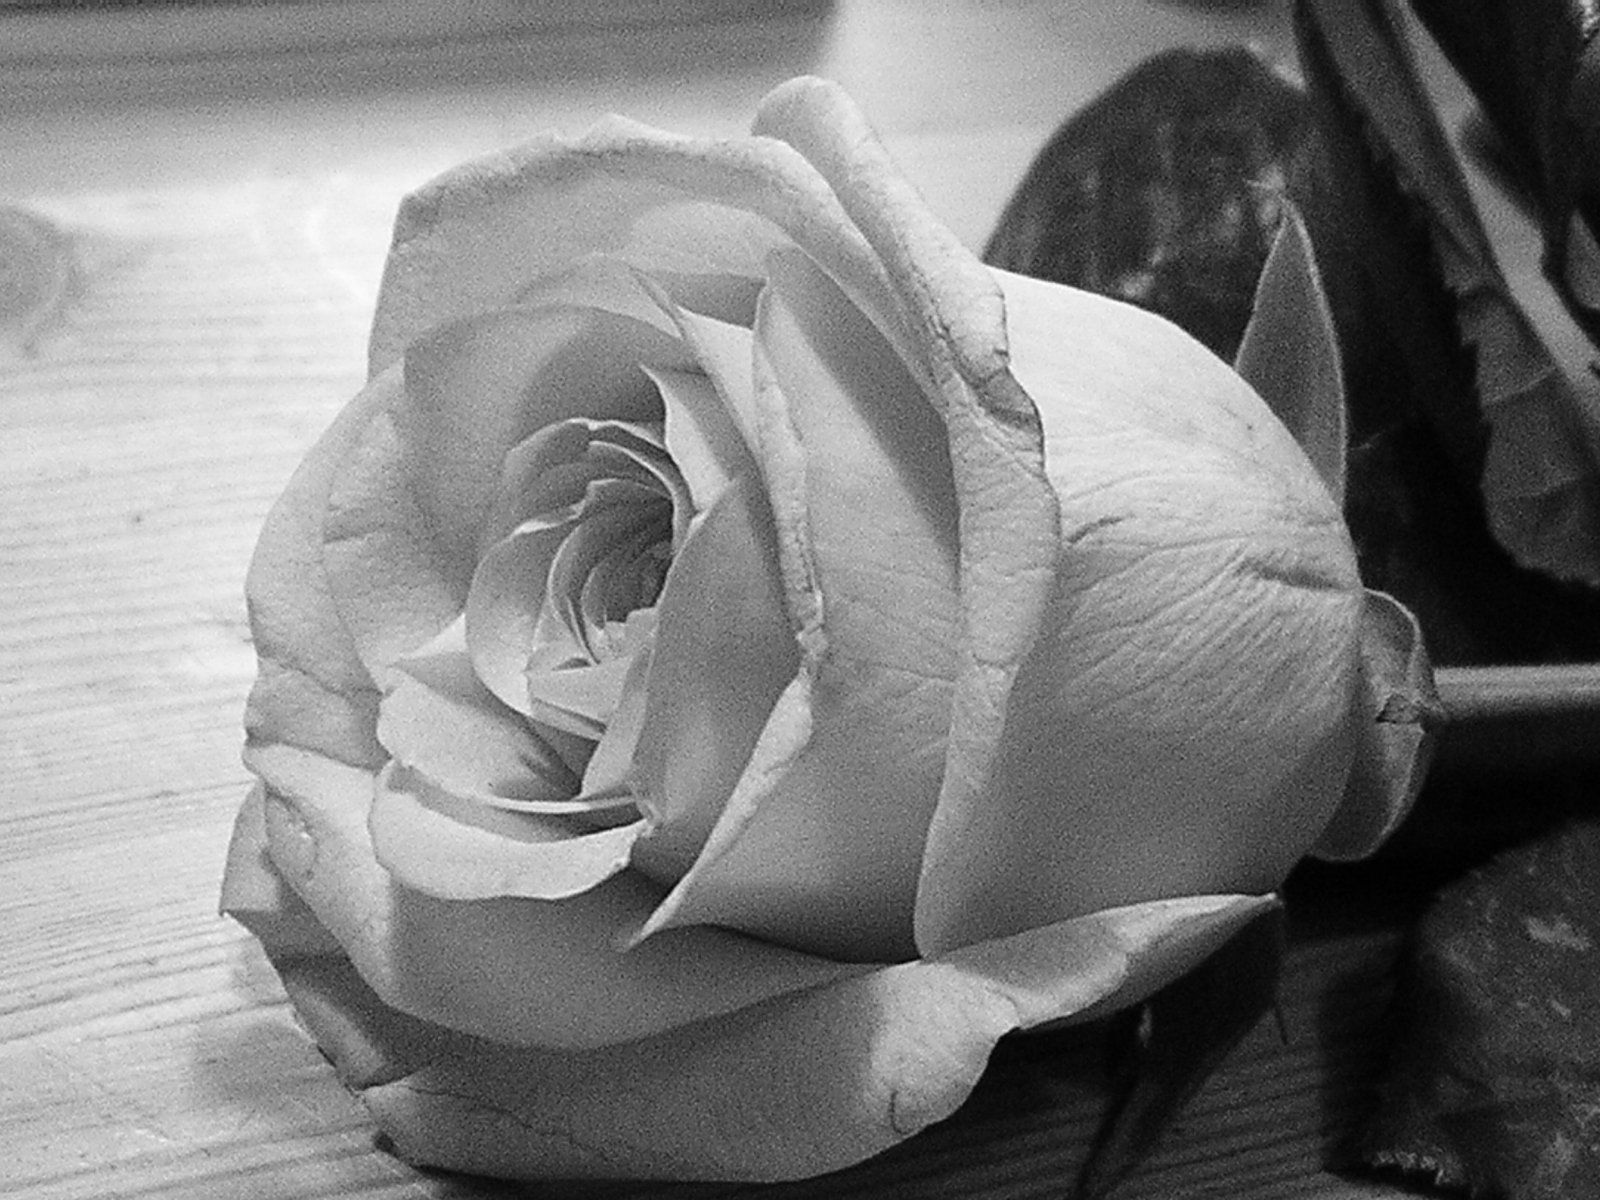 Fall Flowers Desk Background Wallpaper Free Grayscale Rose Stock Photo Freeimages Com